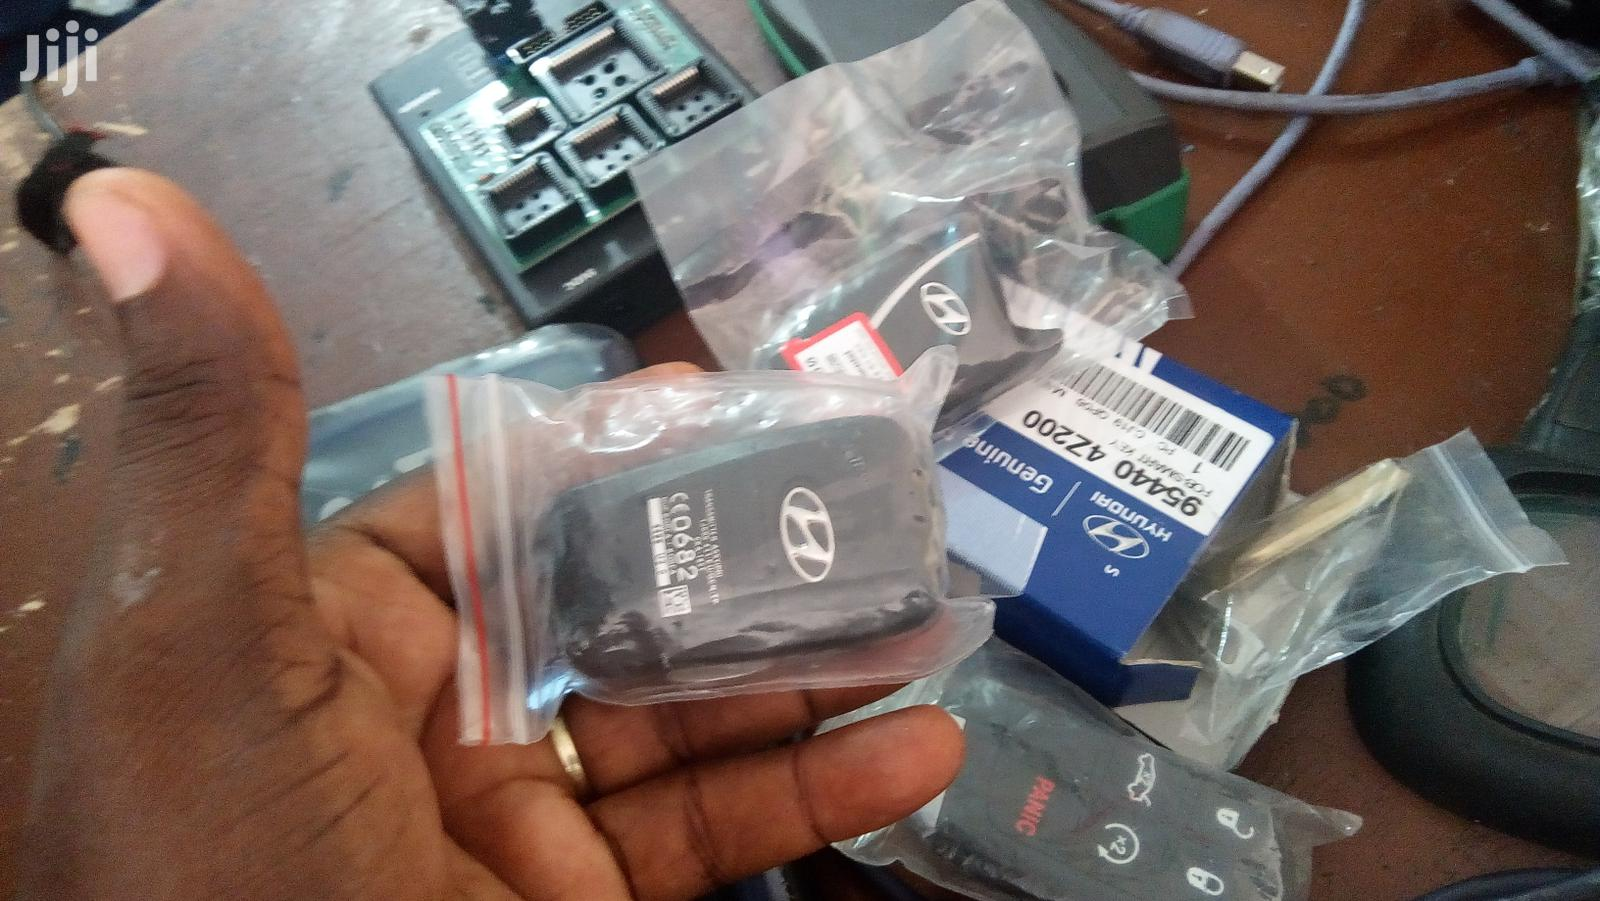 Hyundai Key Programming Services/Repairs. .. | Automotive Services for sale in Accra Metropolitan, Greater Accra, Ghana